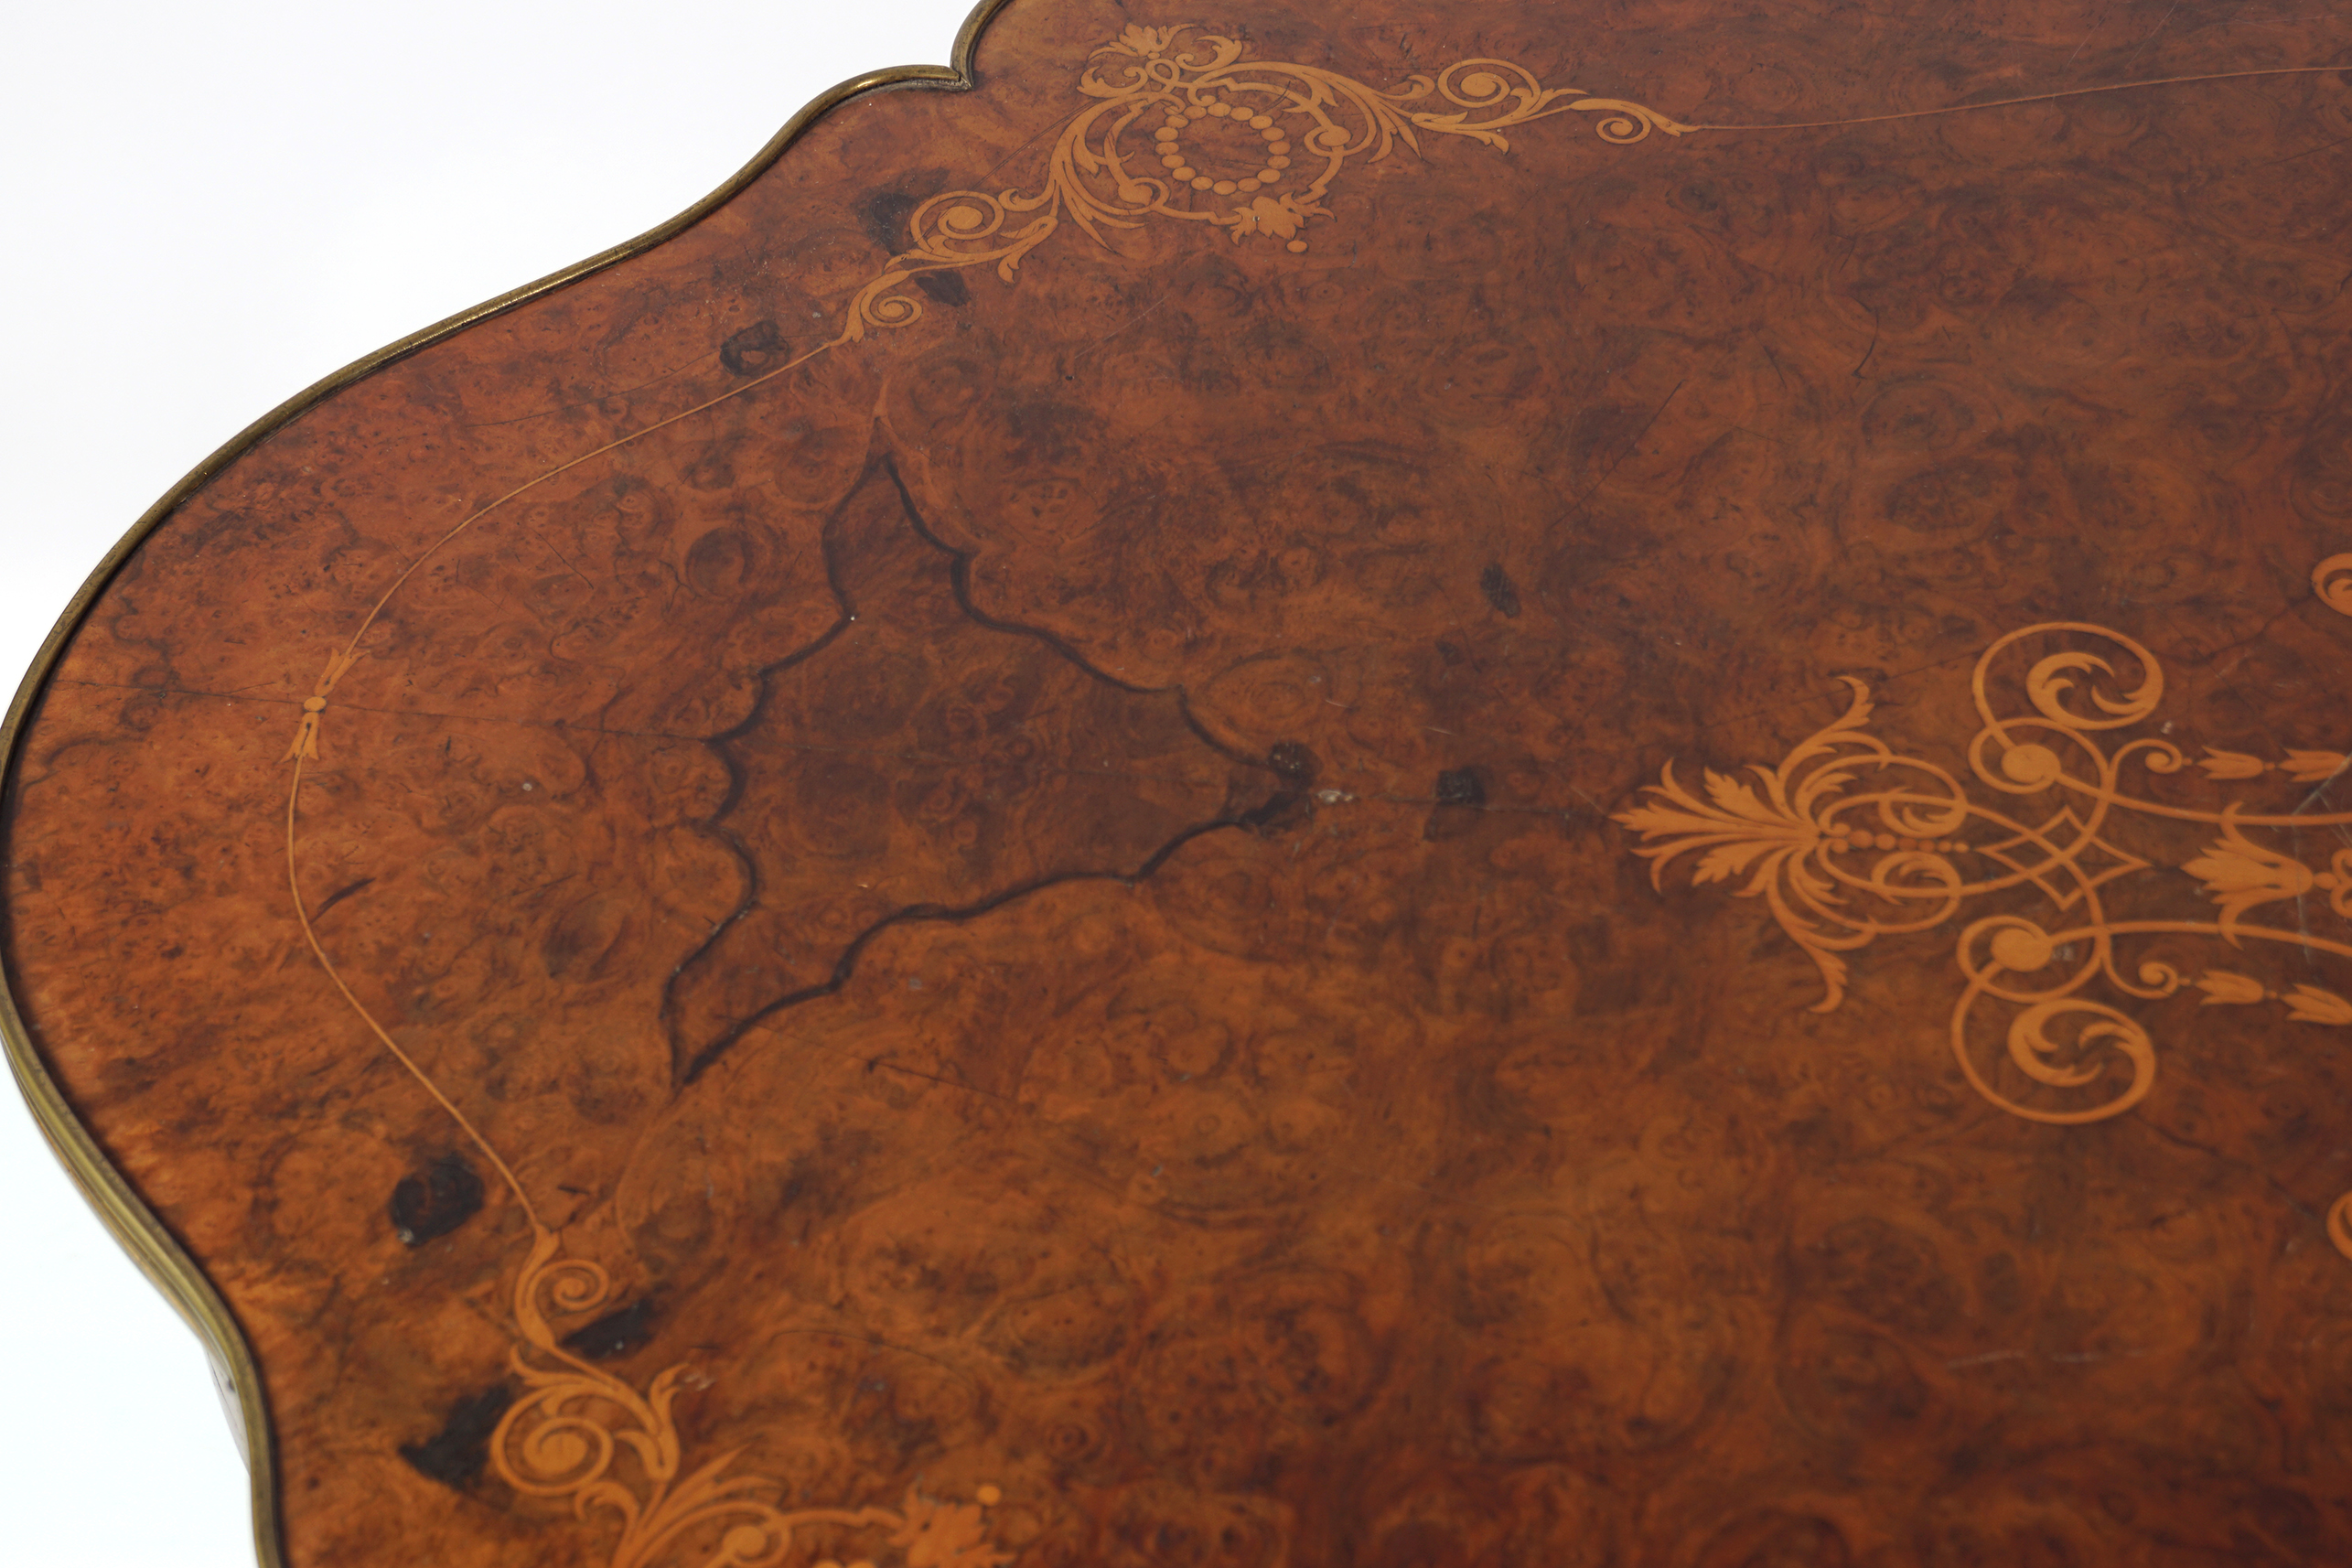 VICTORIAN INLAID WALNUT CENTRE TABLE - Image 4 of 5